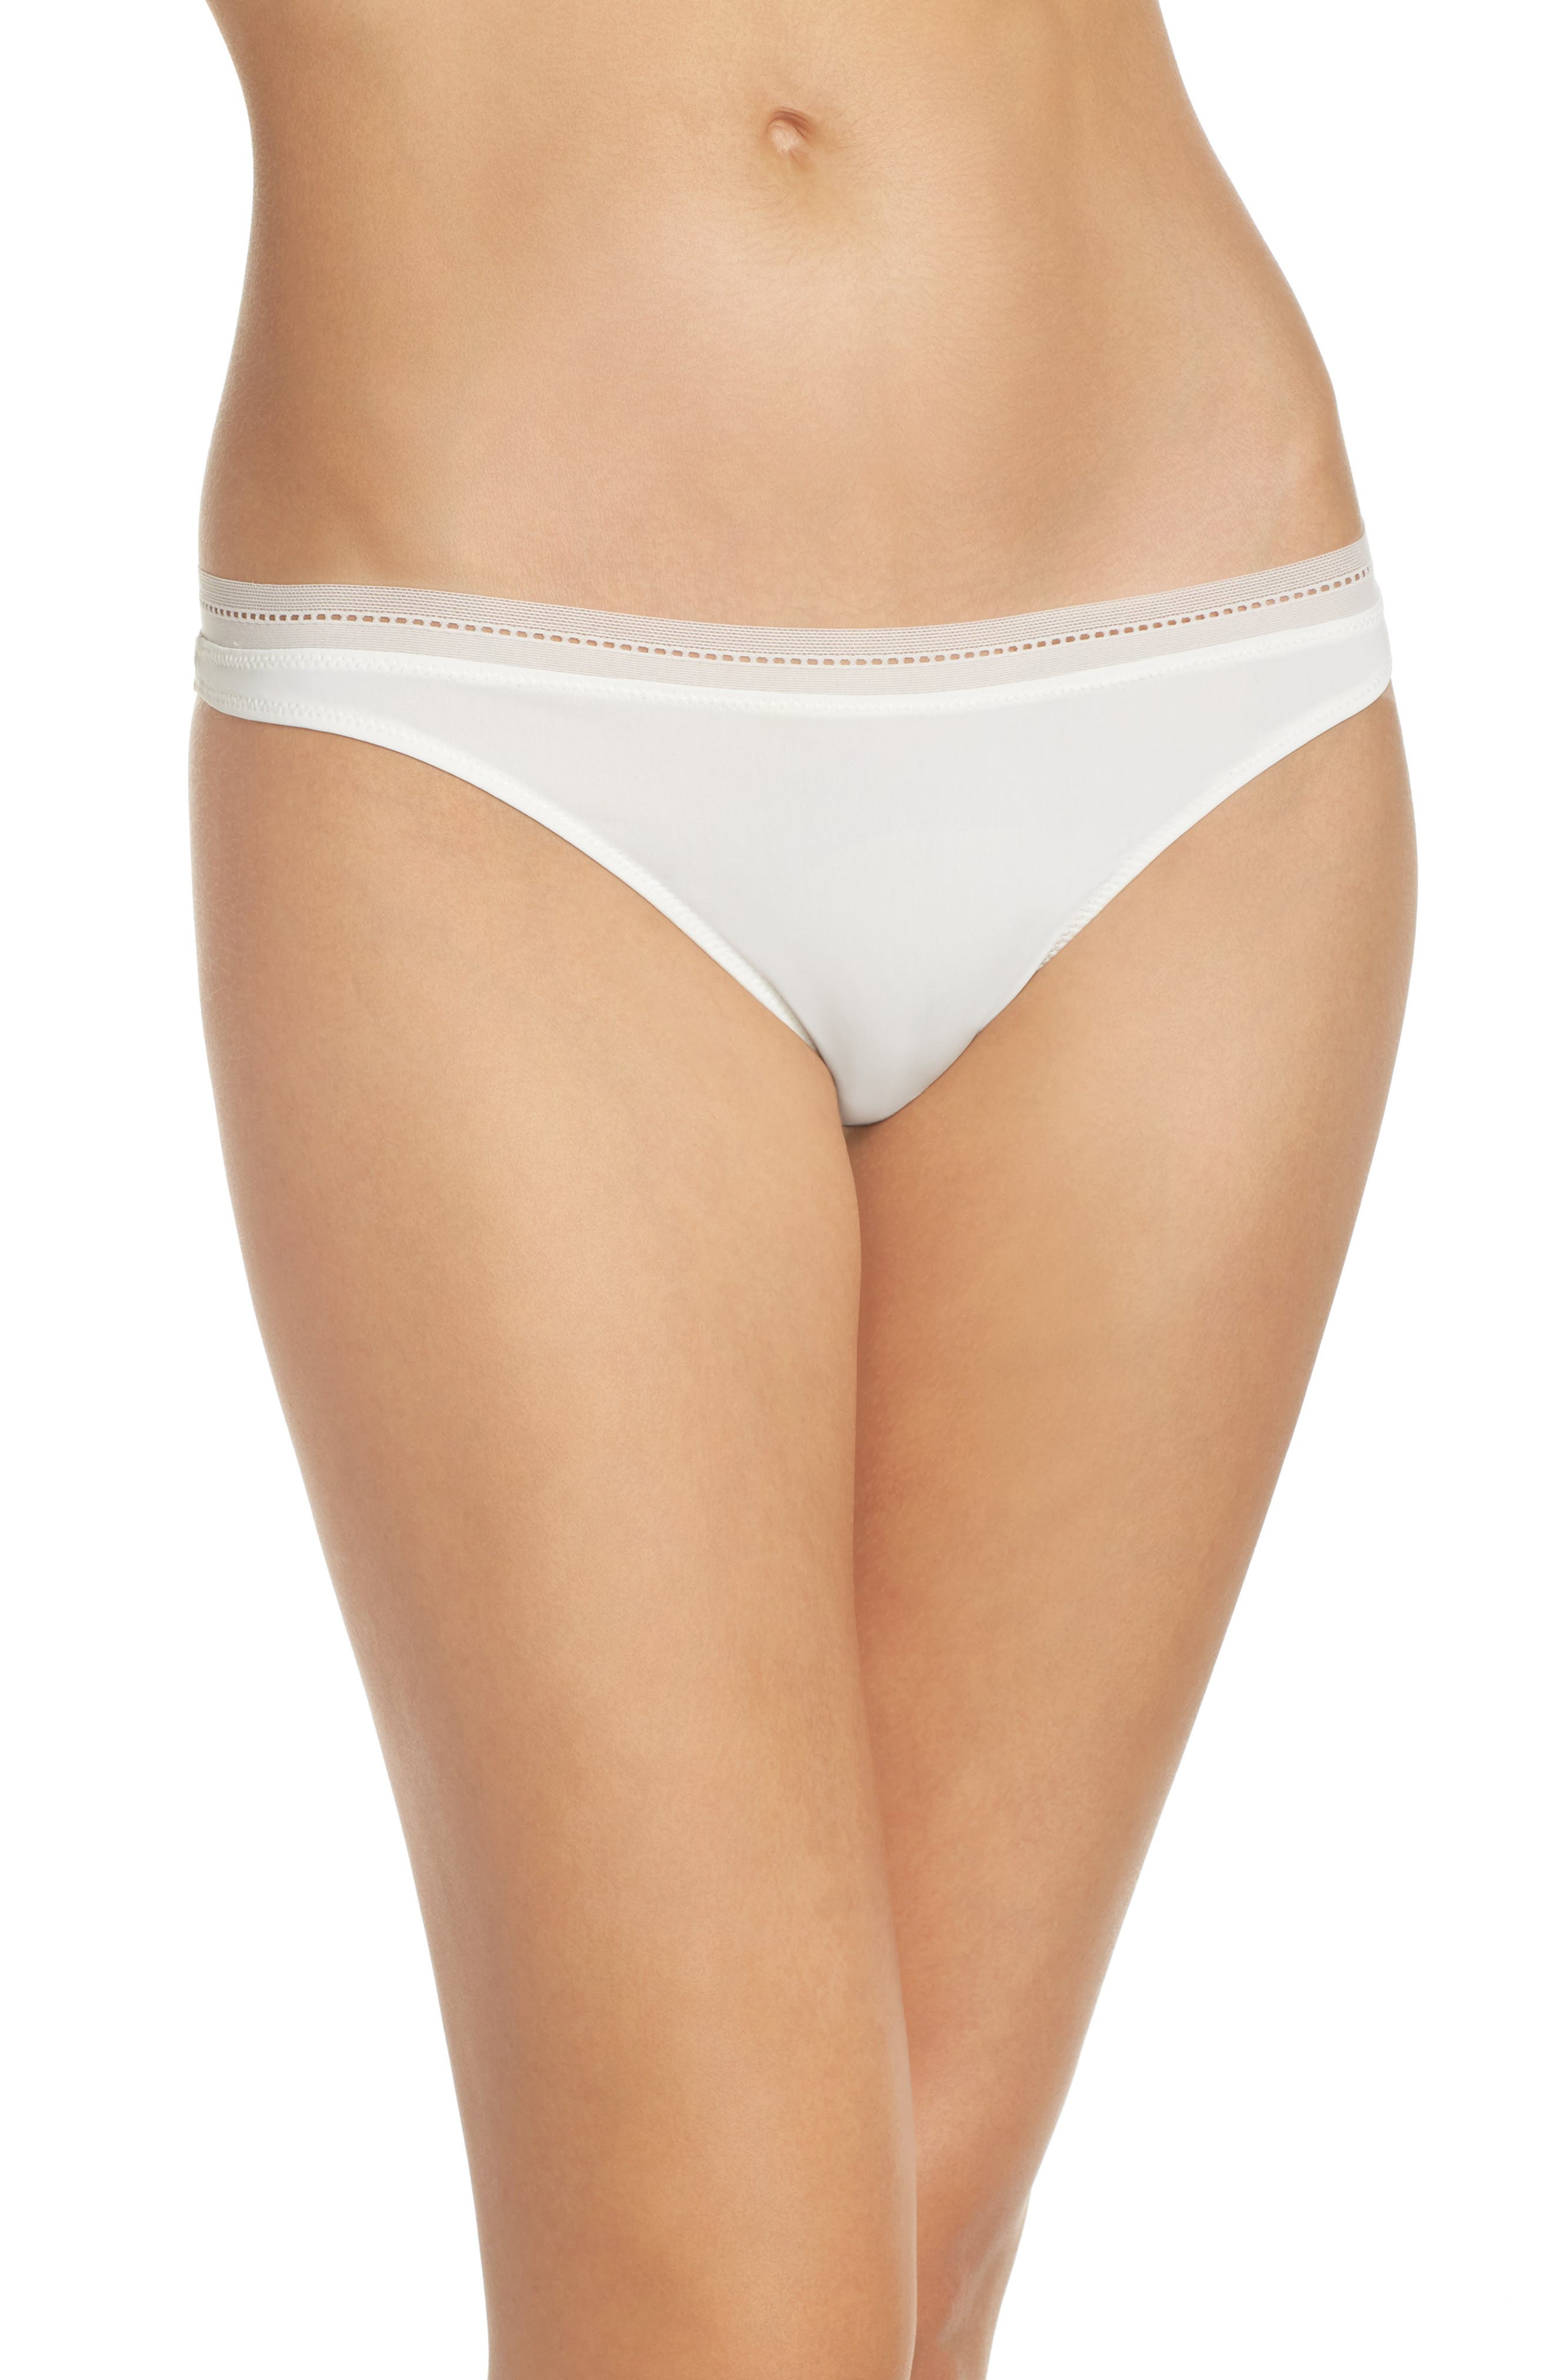 Intimately FP Truth or Dare Thong,                             Main thumbnail 7, color,